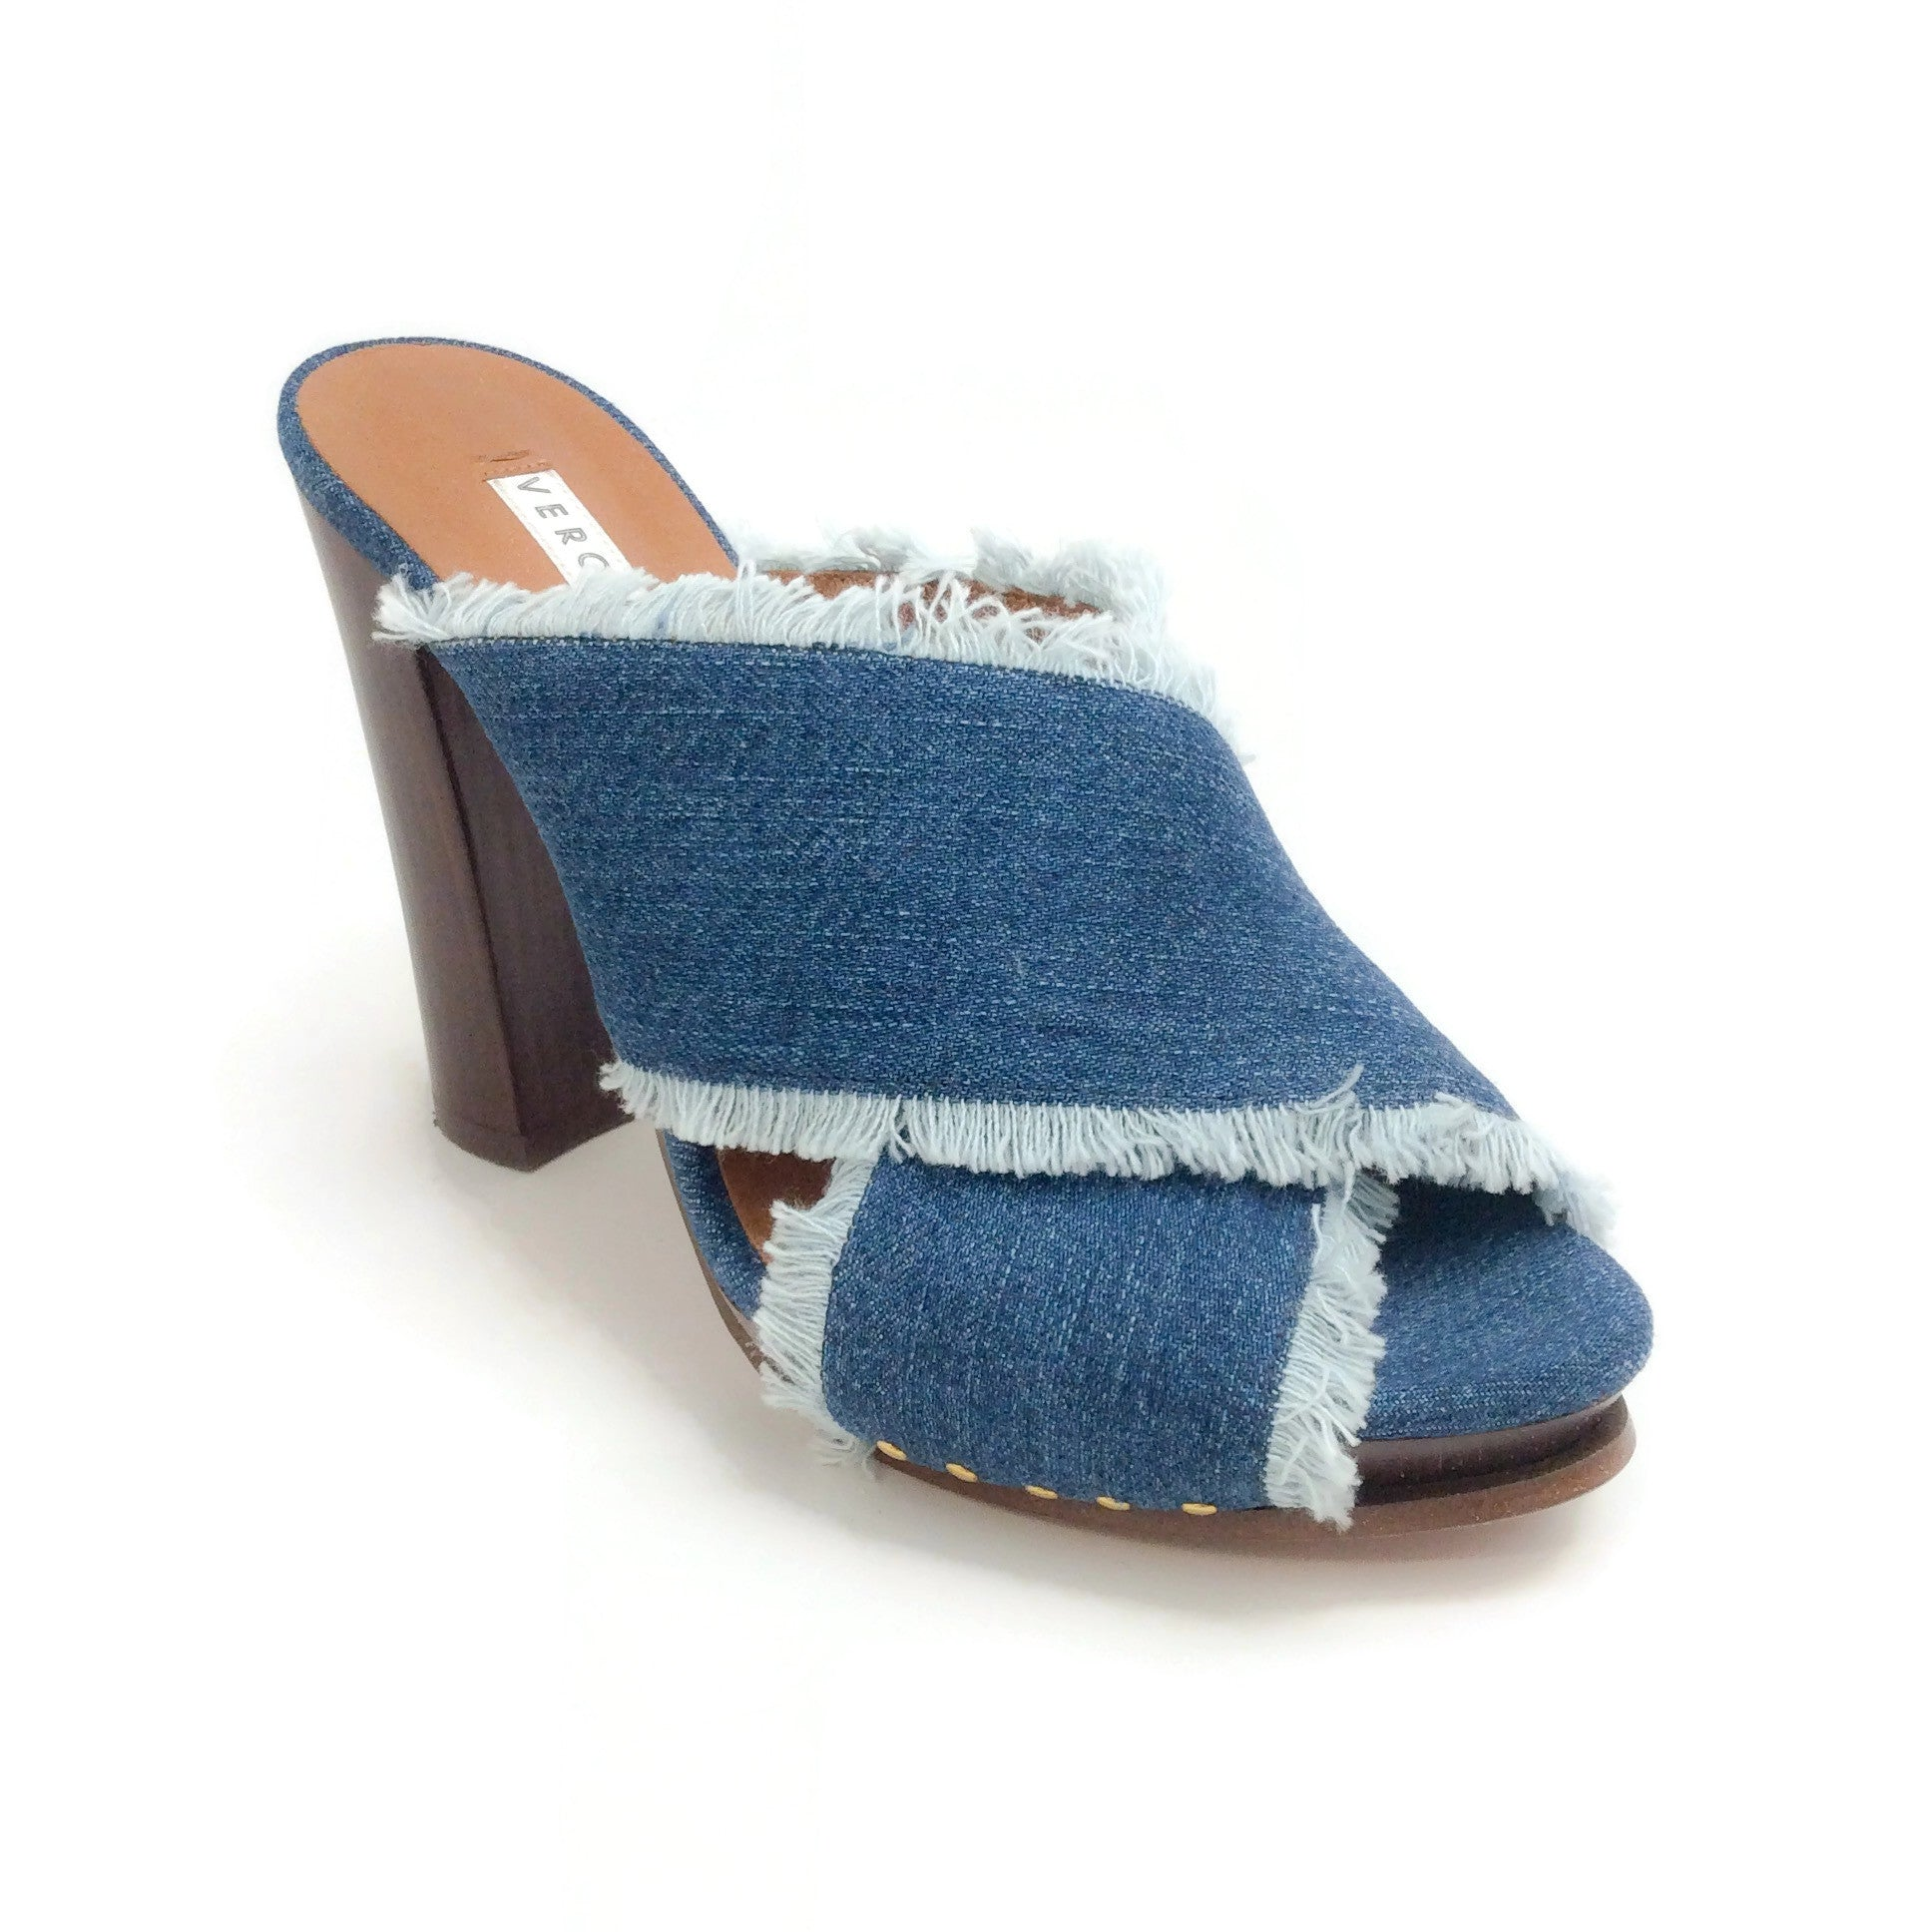 Veronica Beard Denim Holt Sandals